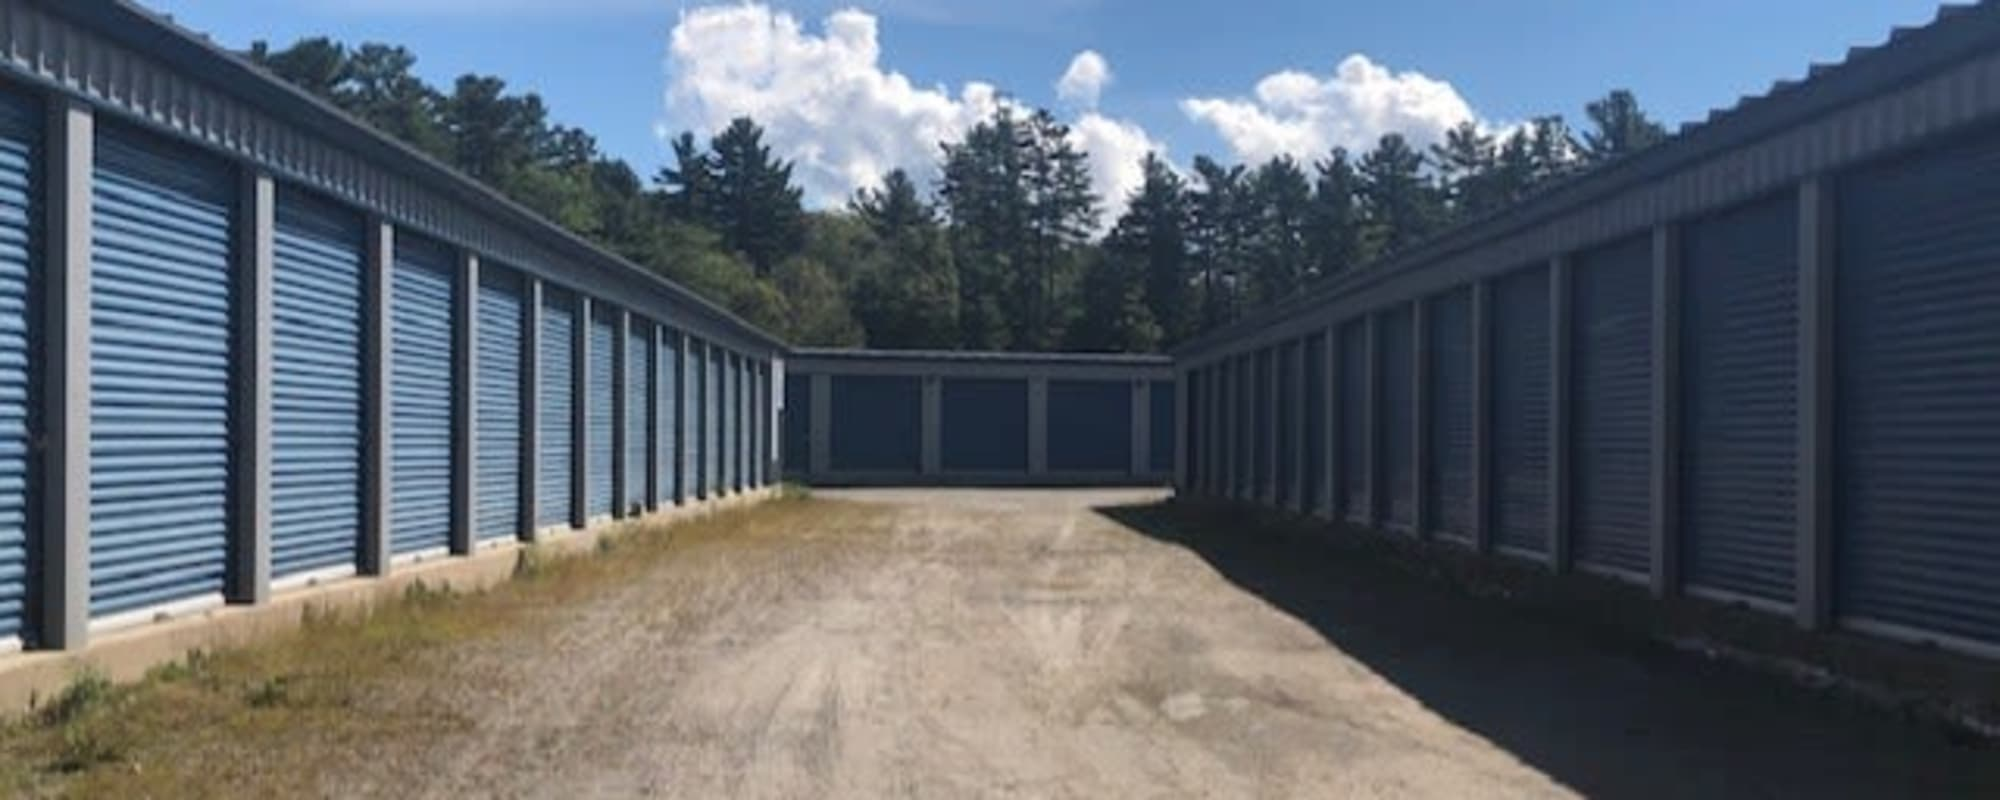 Reviews for Apple Self Storage - Port Carling in Port Carling, Ontario